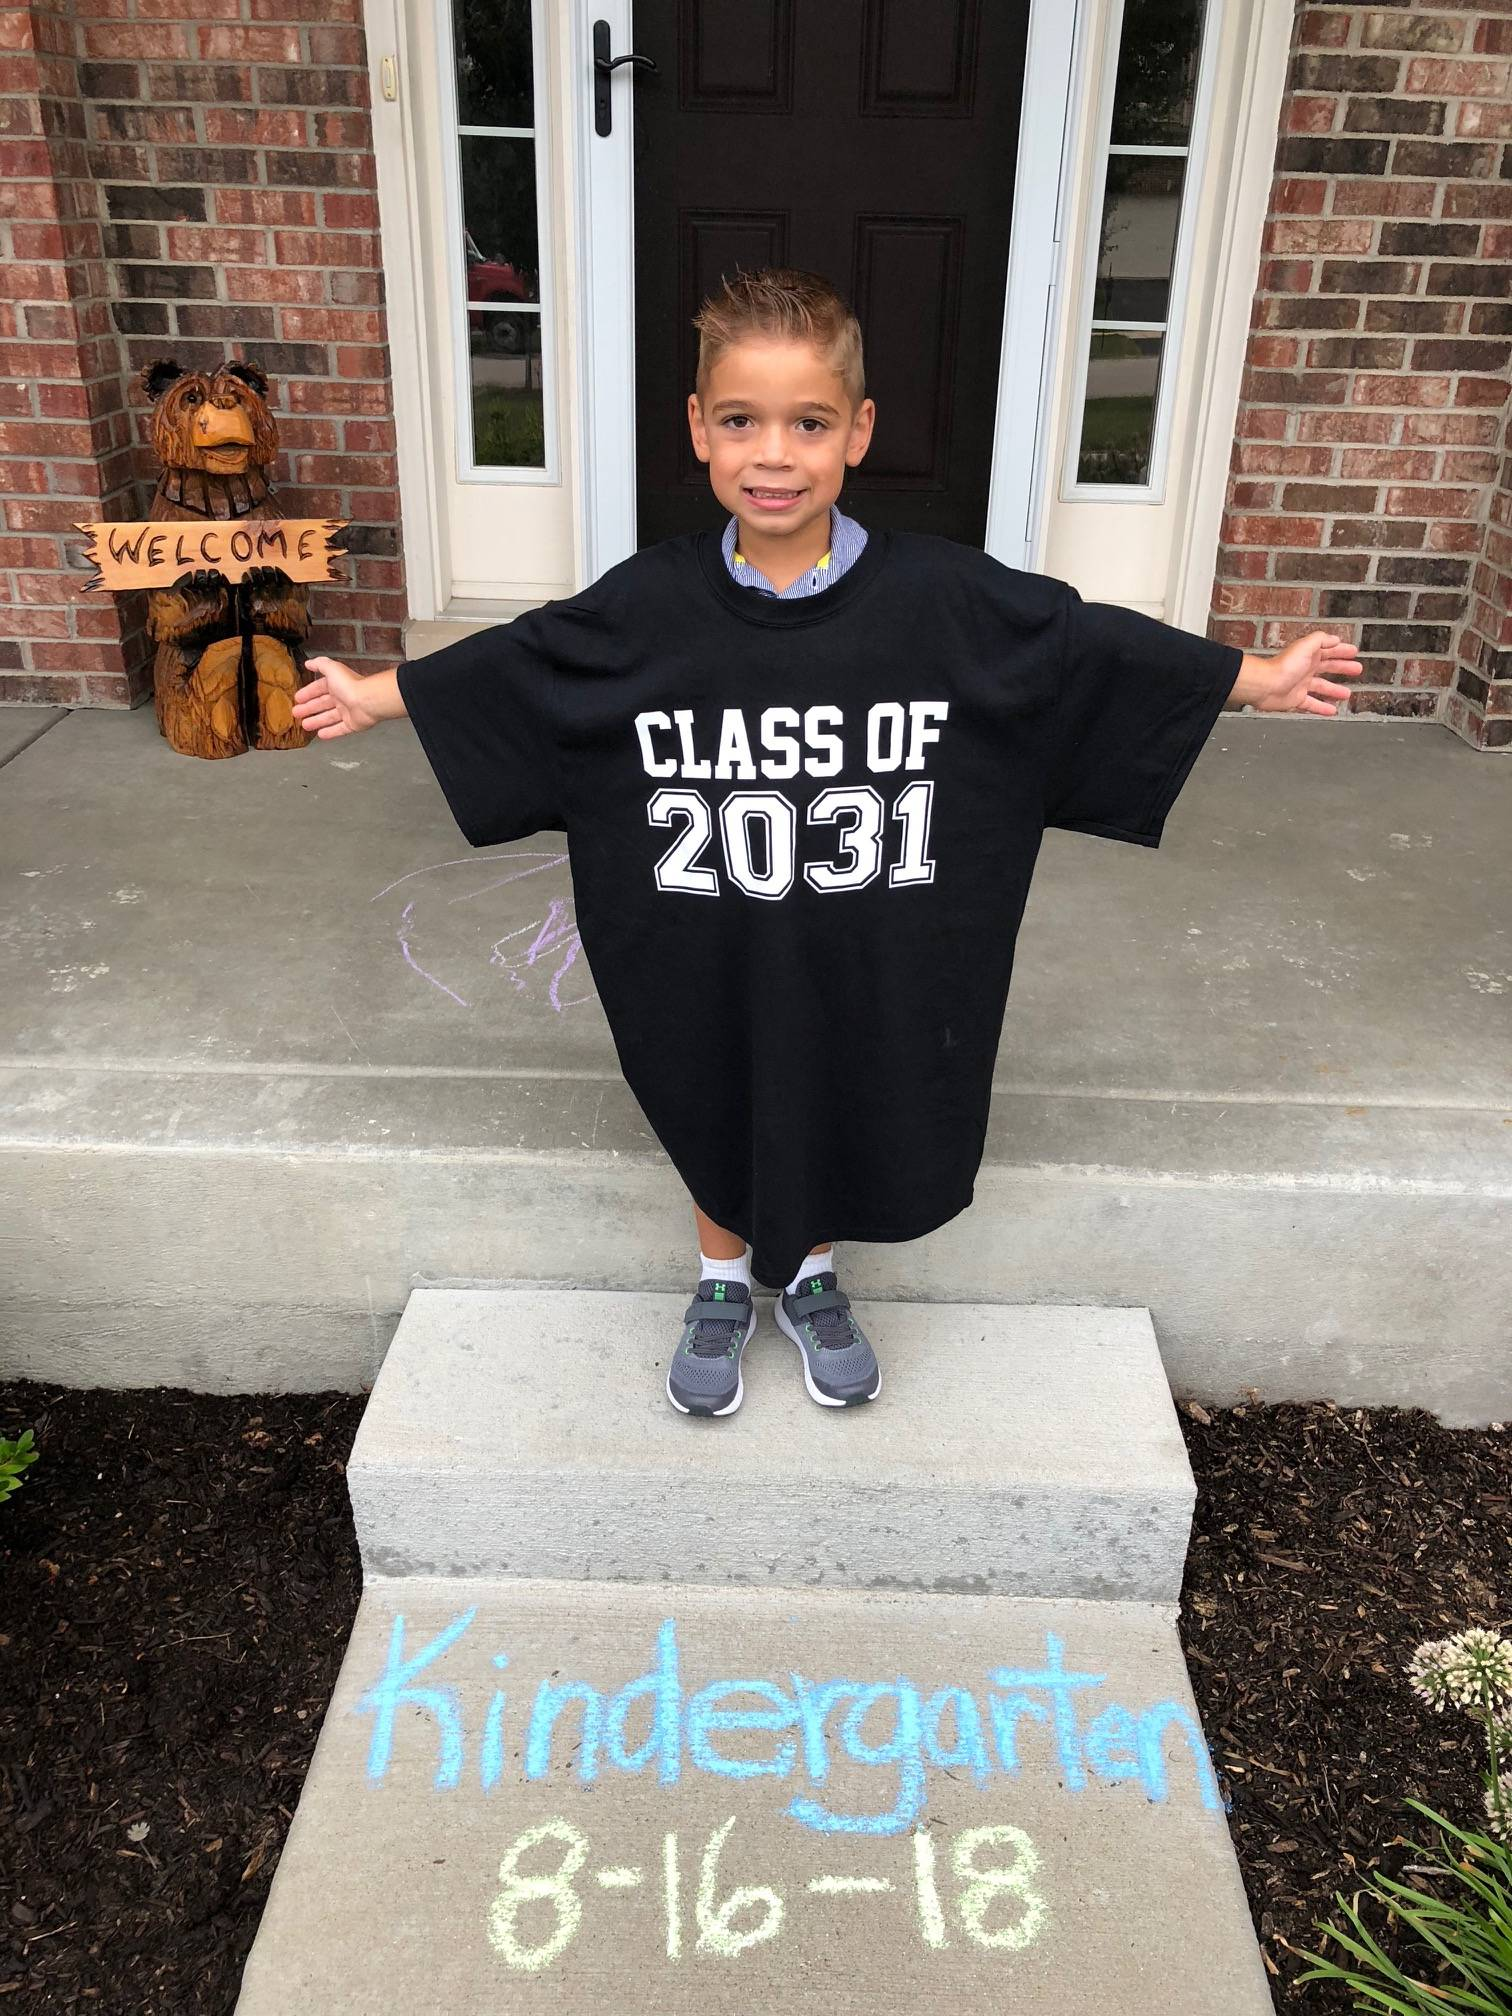 Andrew Kravcar on his first day of kindergarten at Fearn Elementary School, Aurora. His mother, Jamie Kravcar, bought him this shirt and we will watch Andrew grow into it through the years. Clever concept.